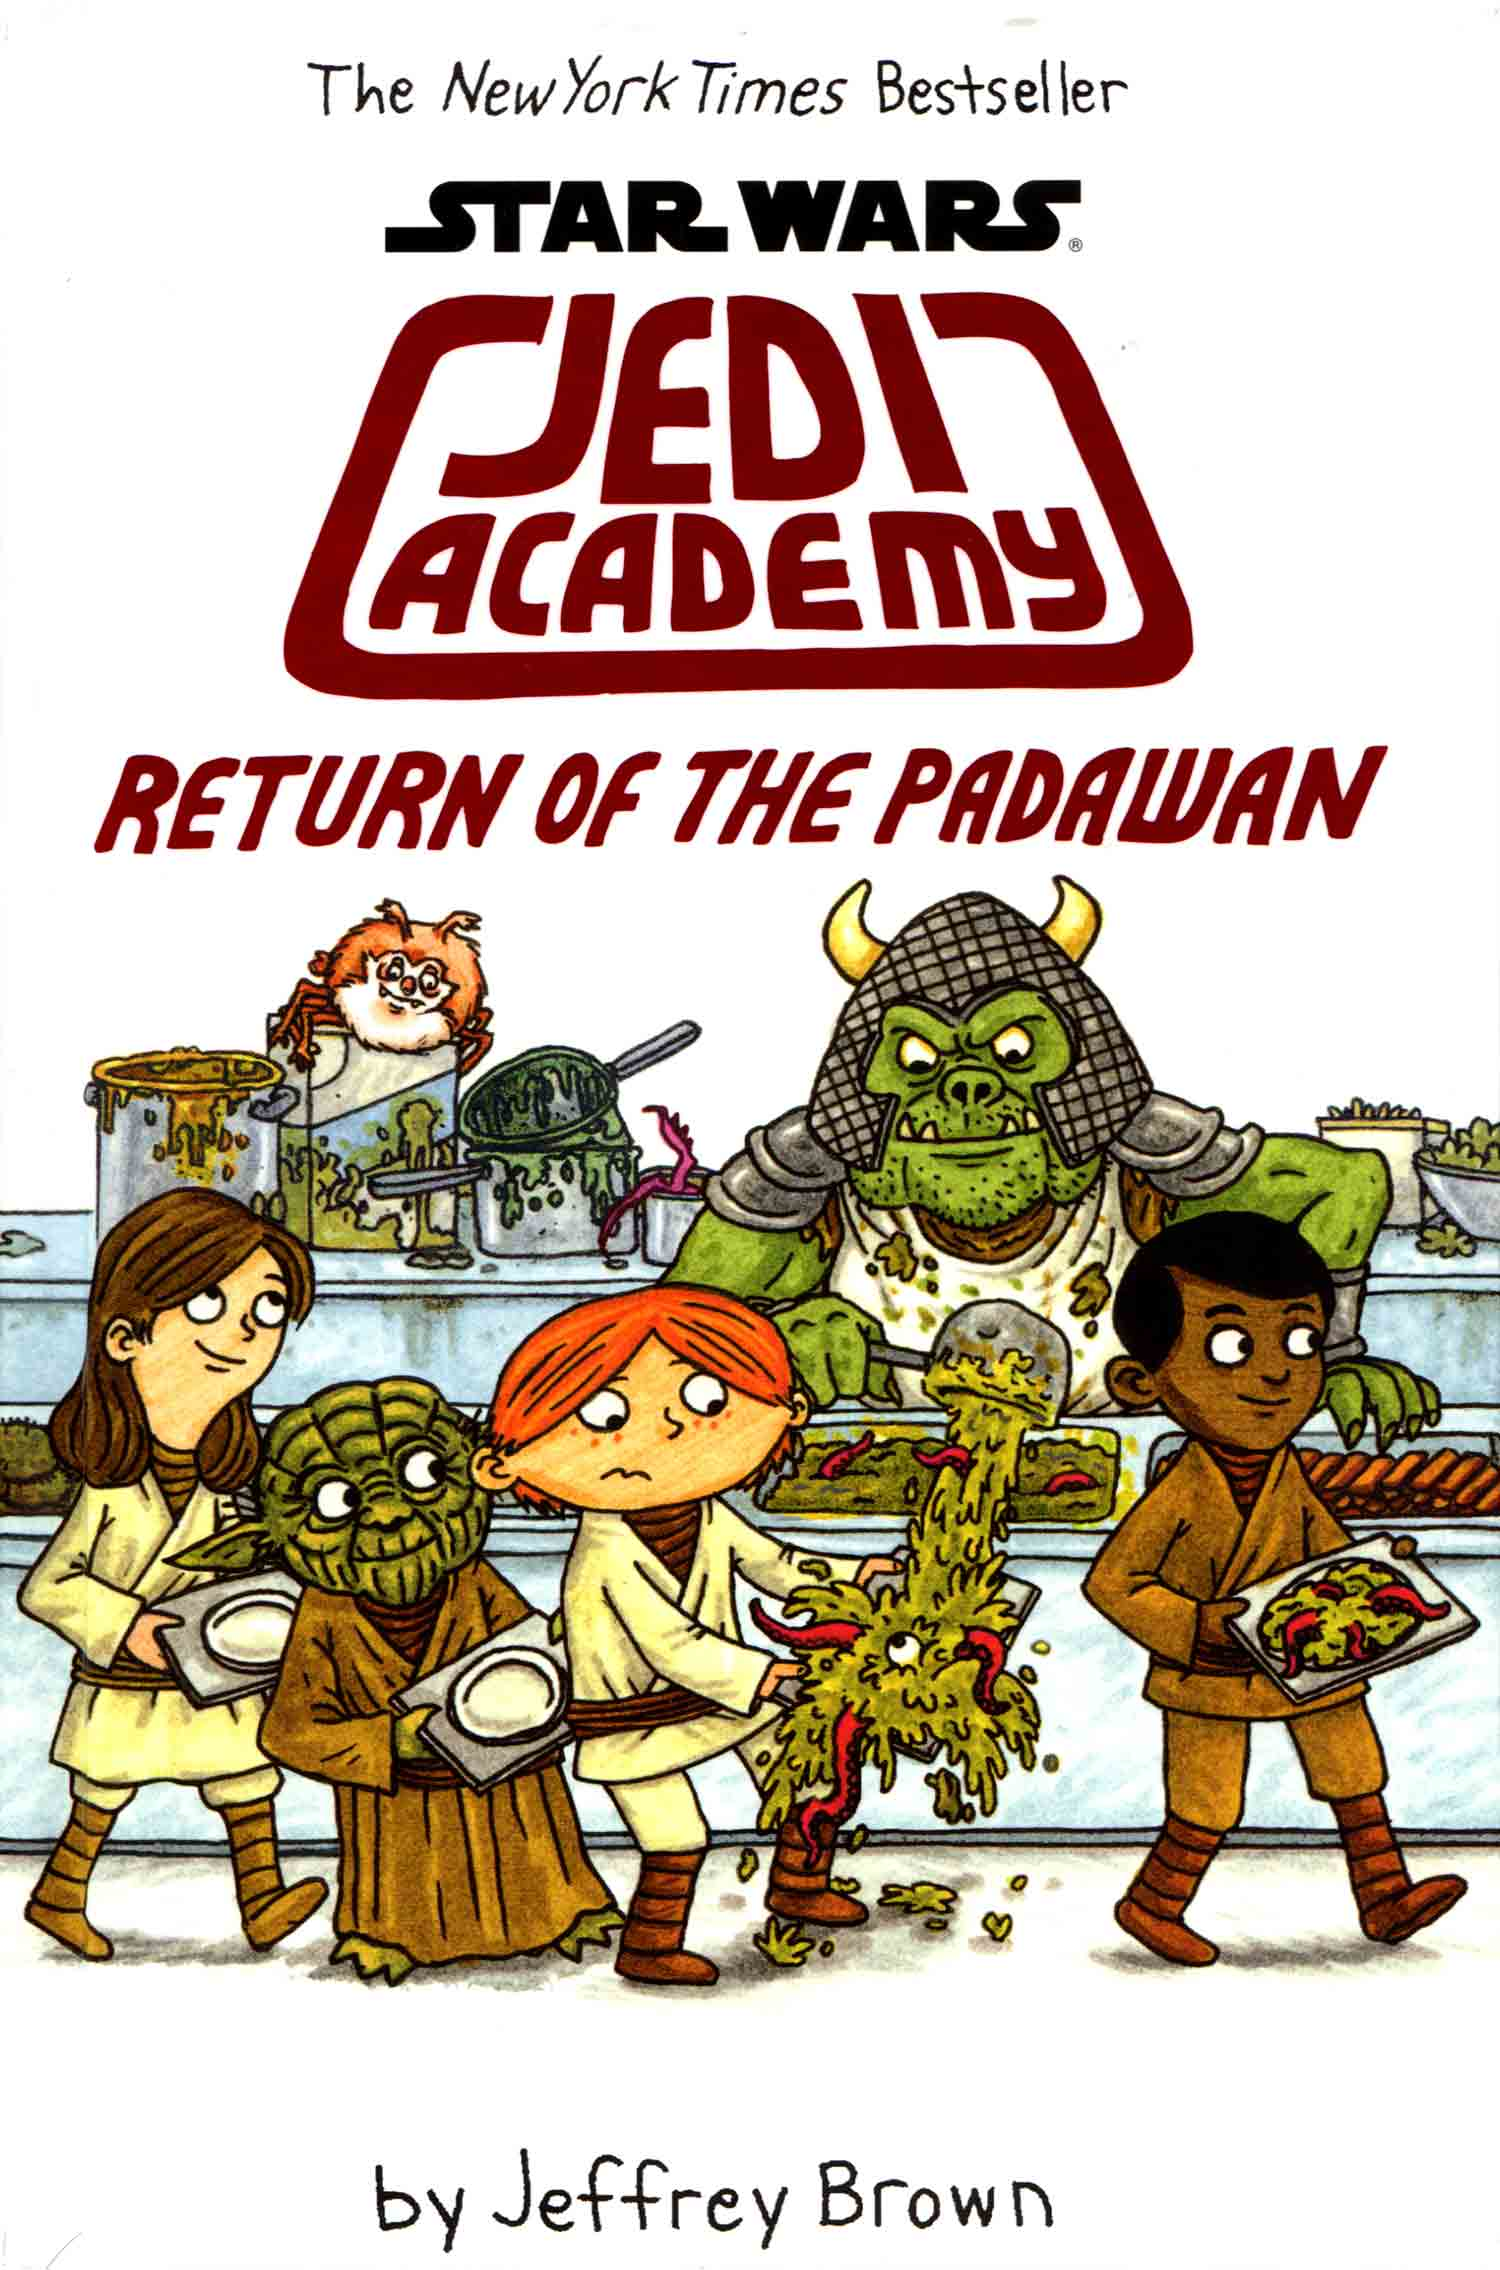 """Star Wars Jedi Academy - Return of the Padawan"" by Jeffrey Brown."